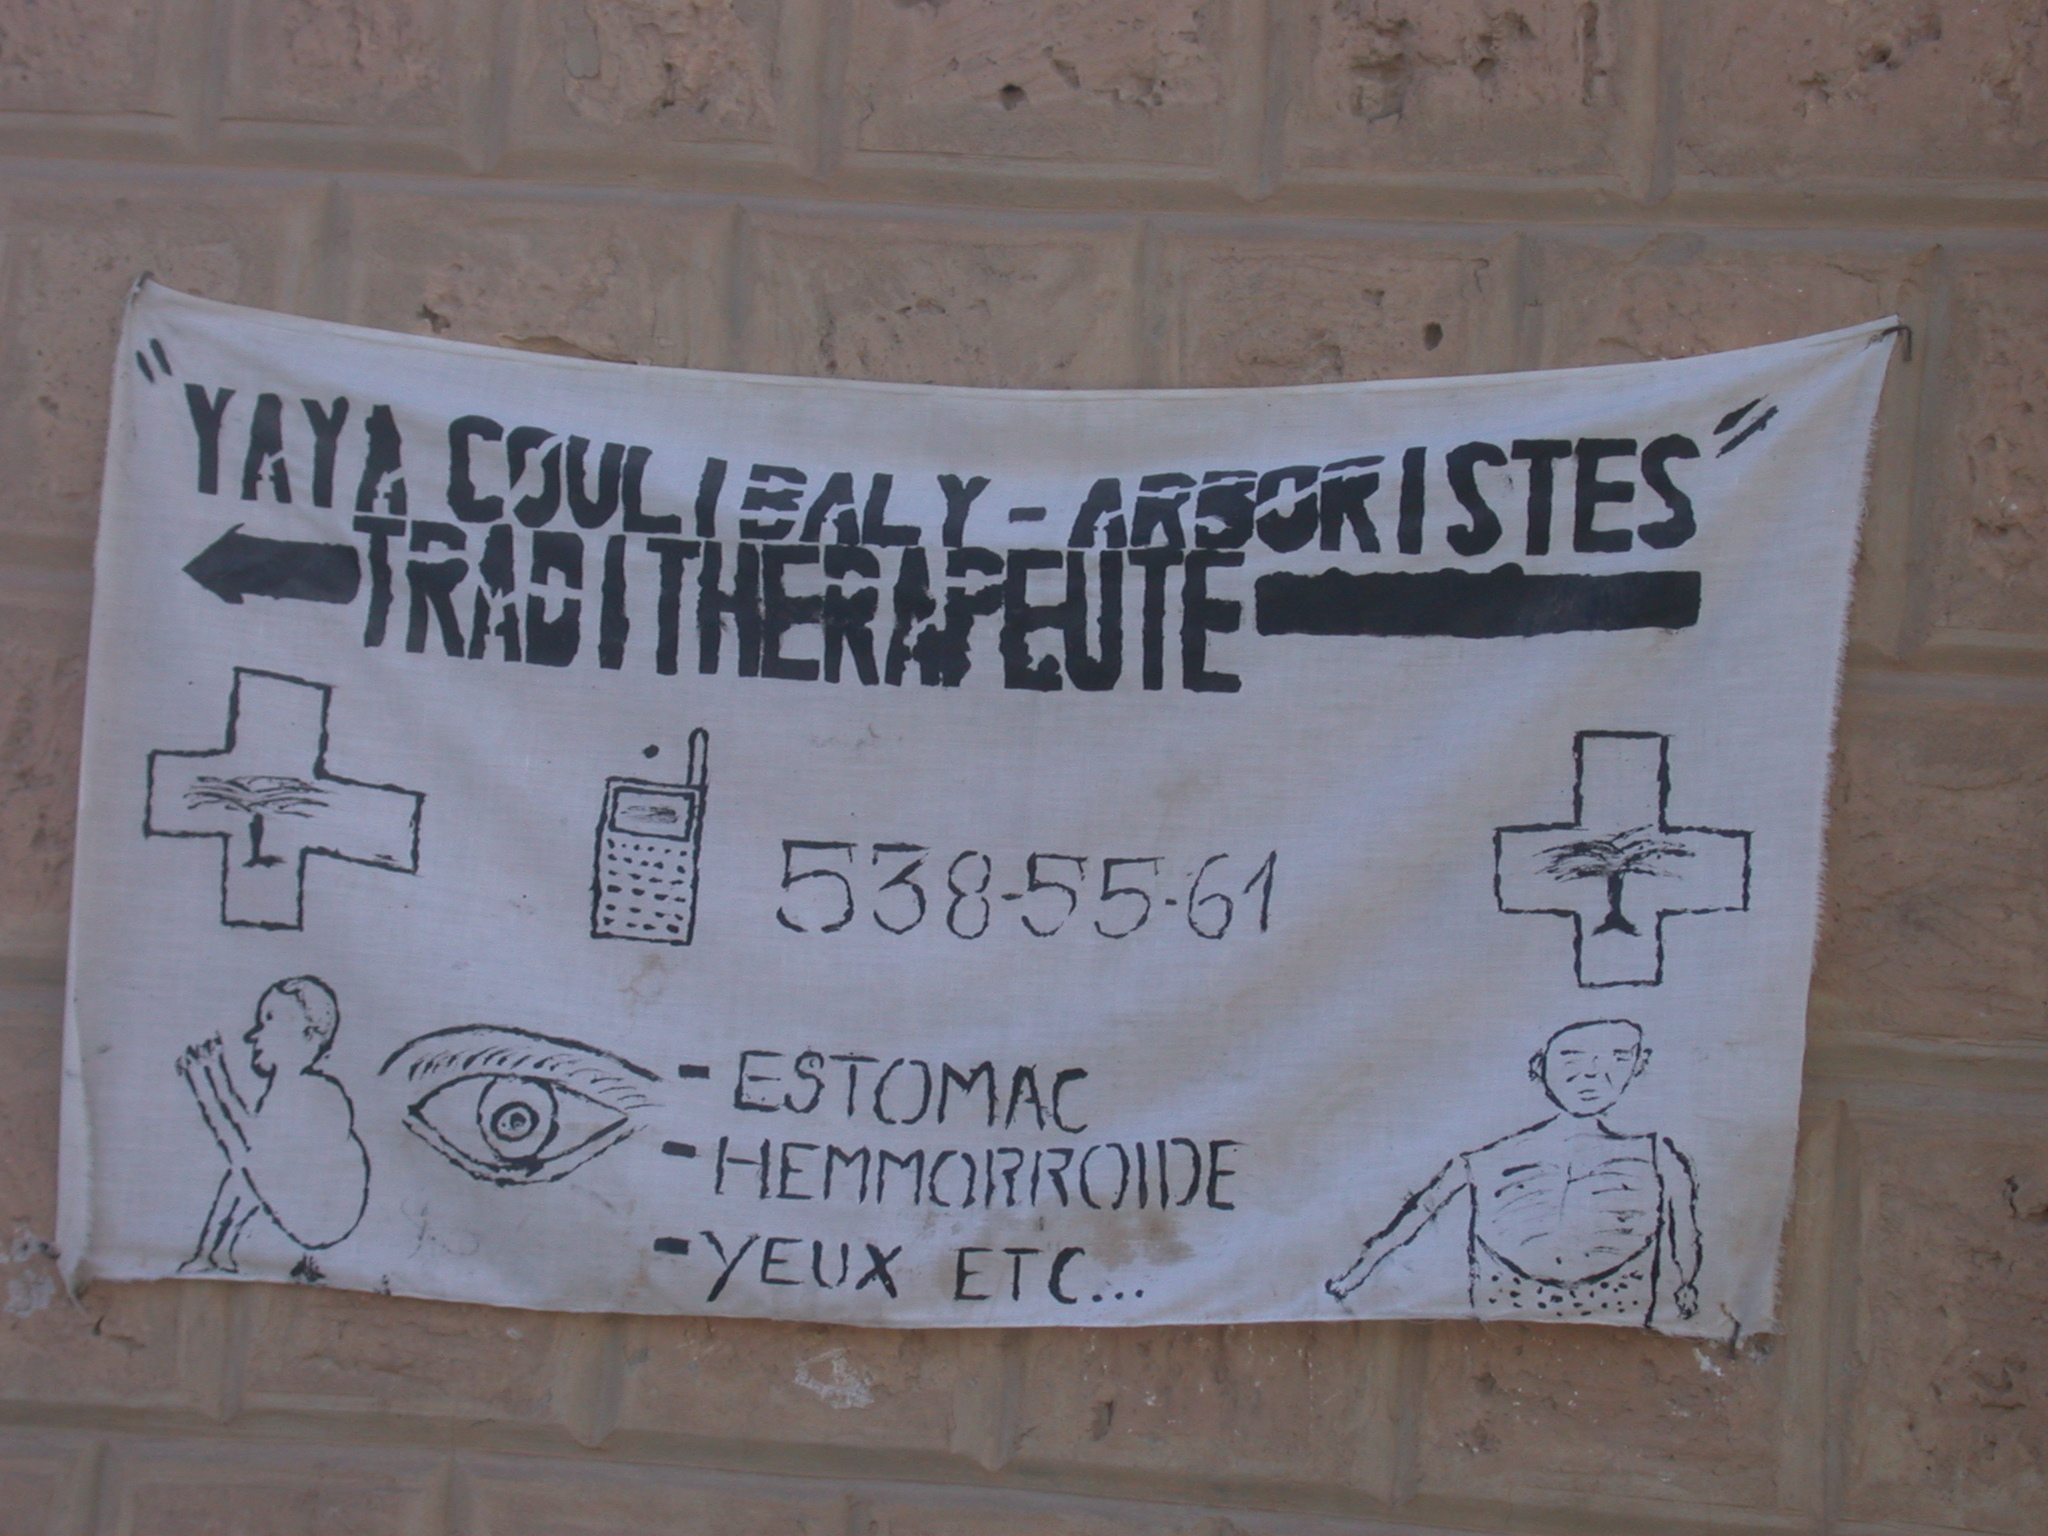 Sign for Traditional Therapist Advertising Stomach, Hemorrhoid, and Eye Treatments, Timbuktu, Mali